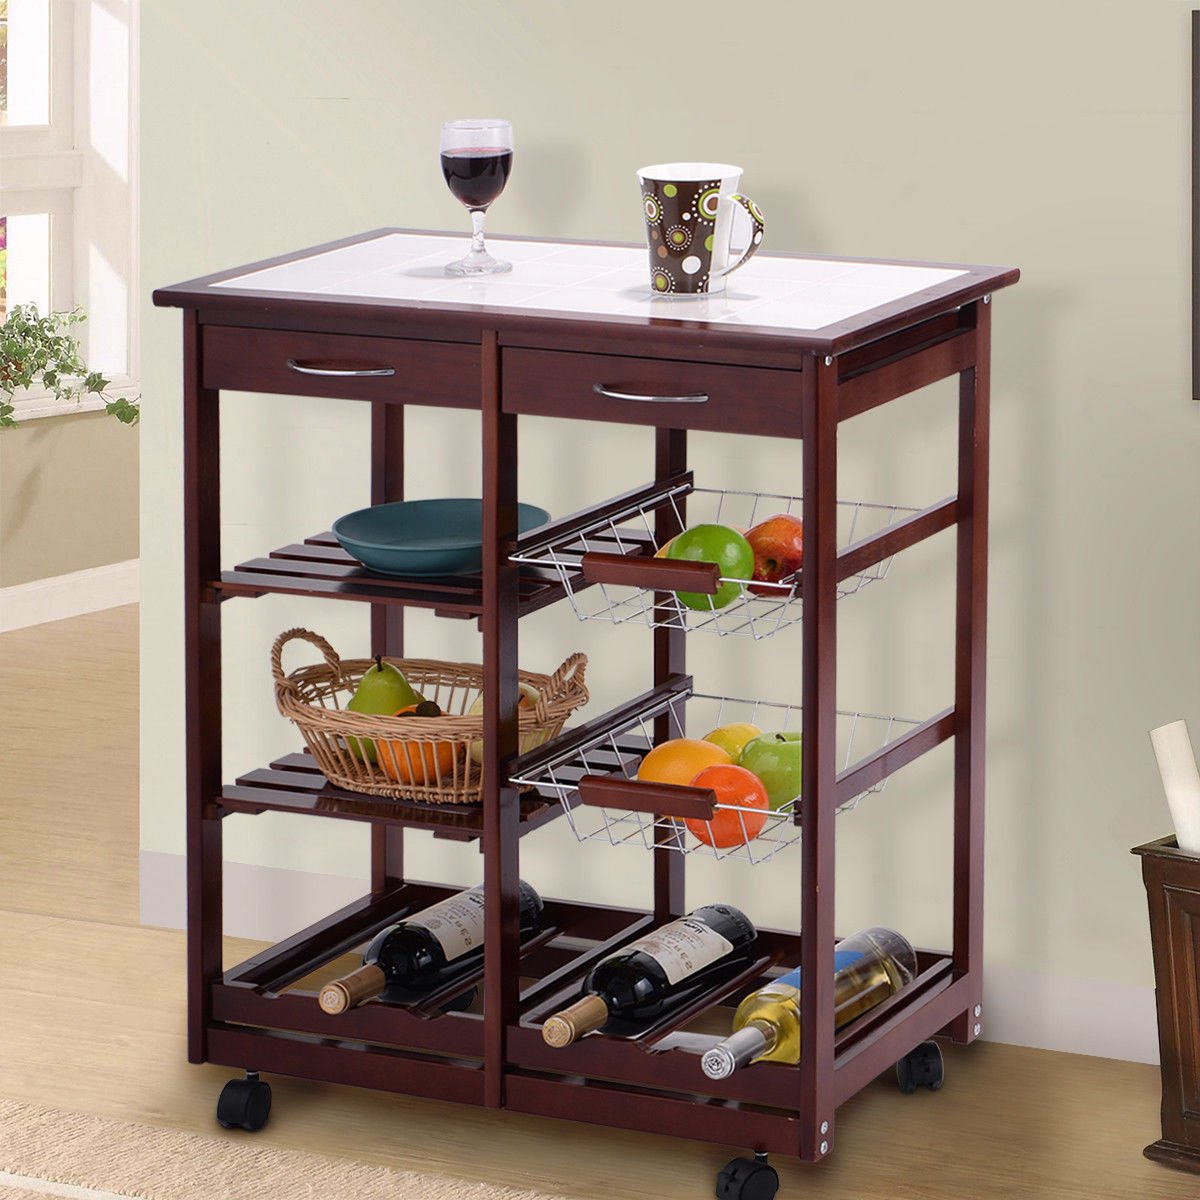 lunanice Portable 4-tier Rolling Wood Kitchen Trolley Cart w/Storage Drawers Dining Stand